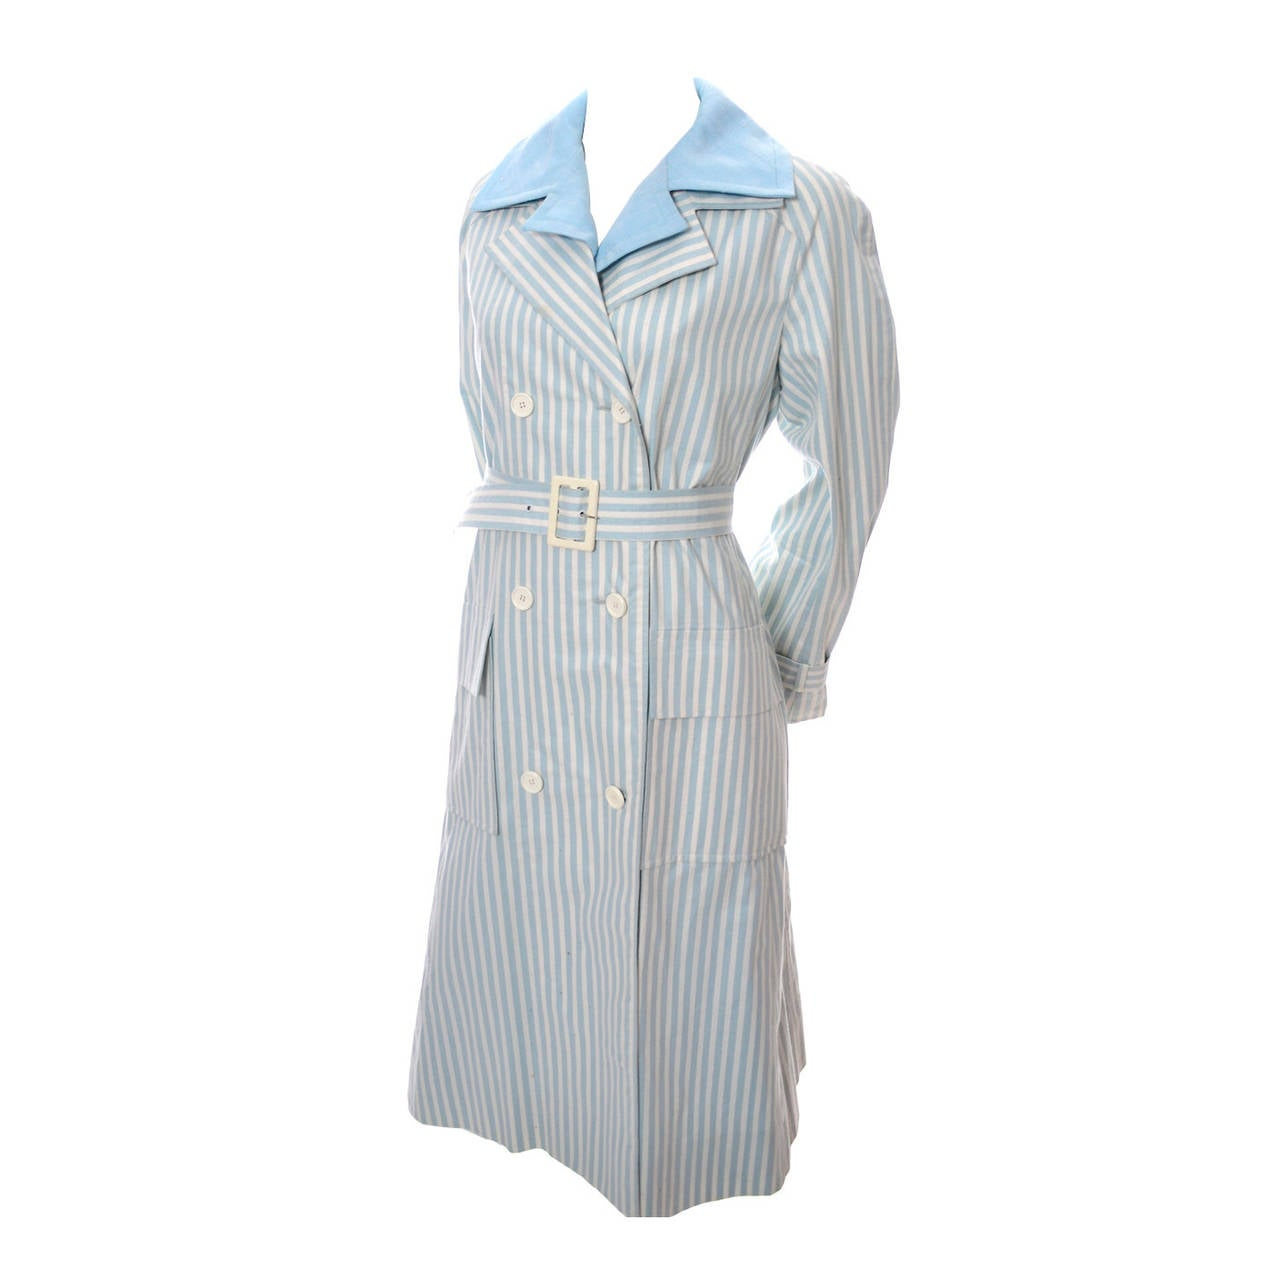 Givenchy Nouvelle Boutique 1970s Blue Vintage Dress and Striped Coat Outfit 1